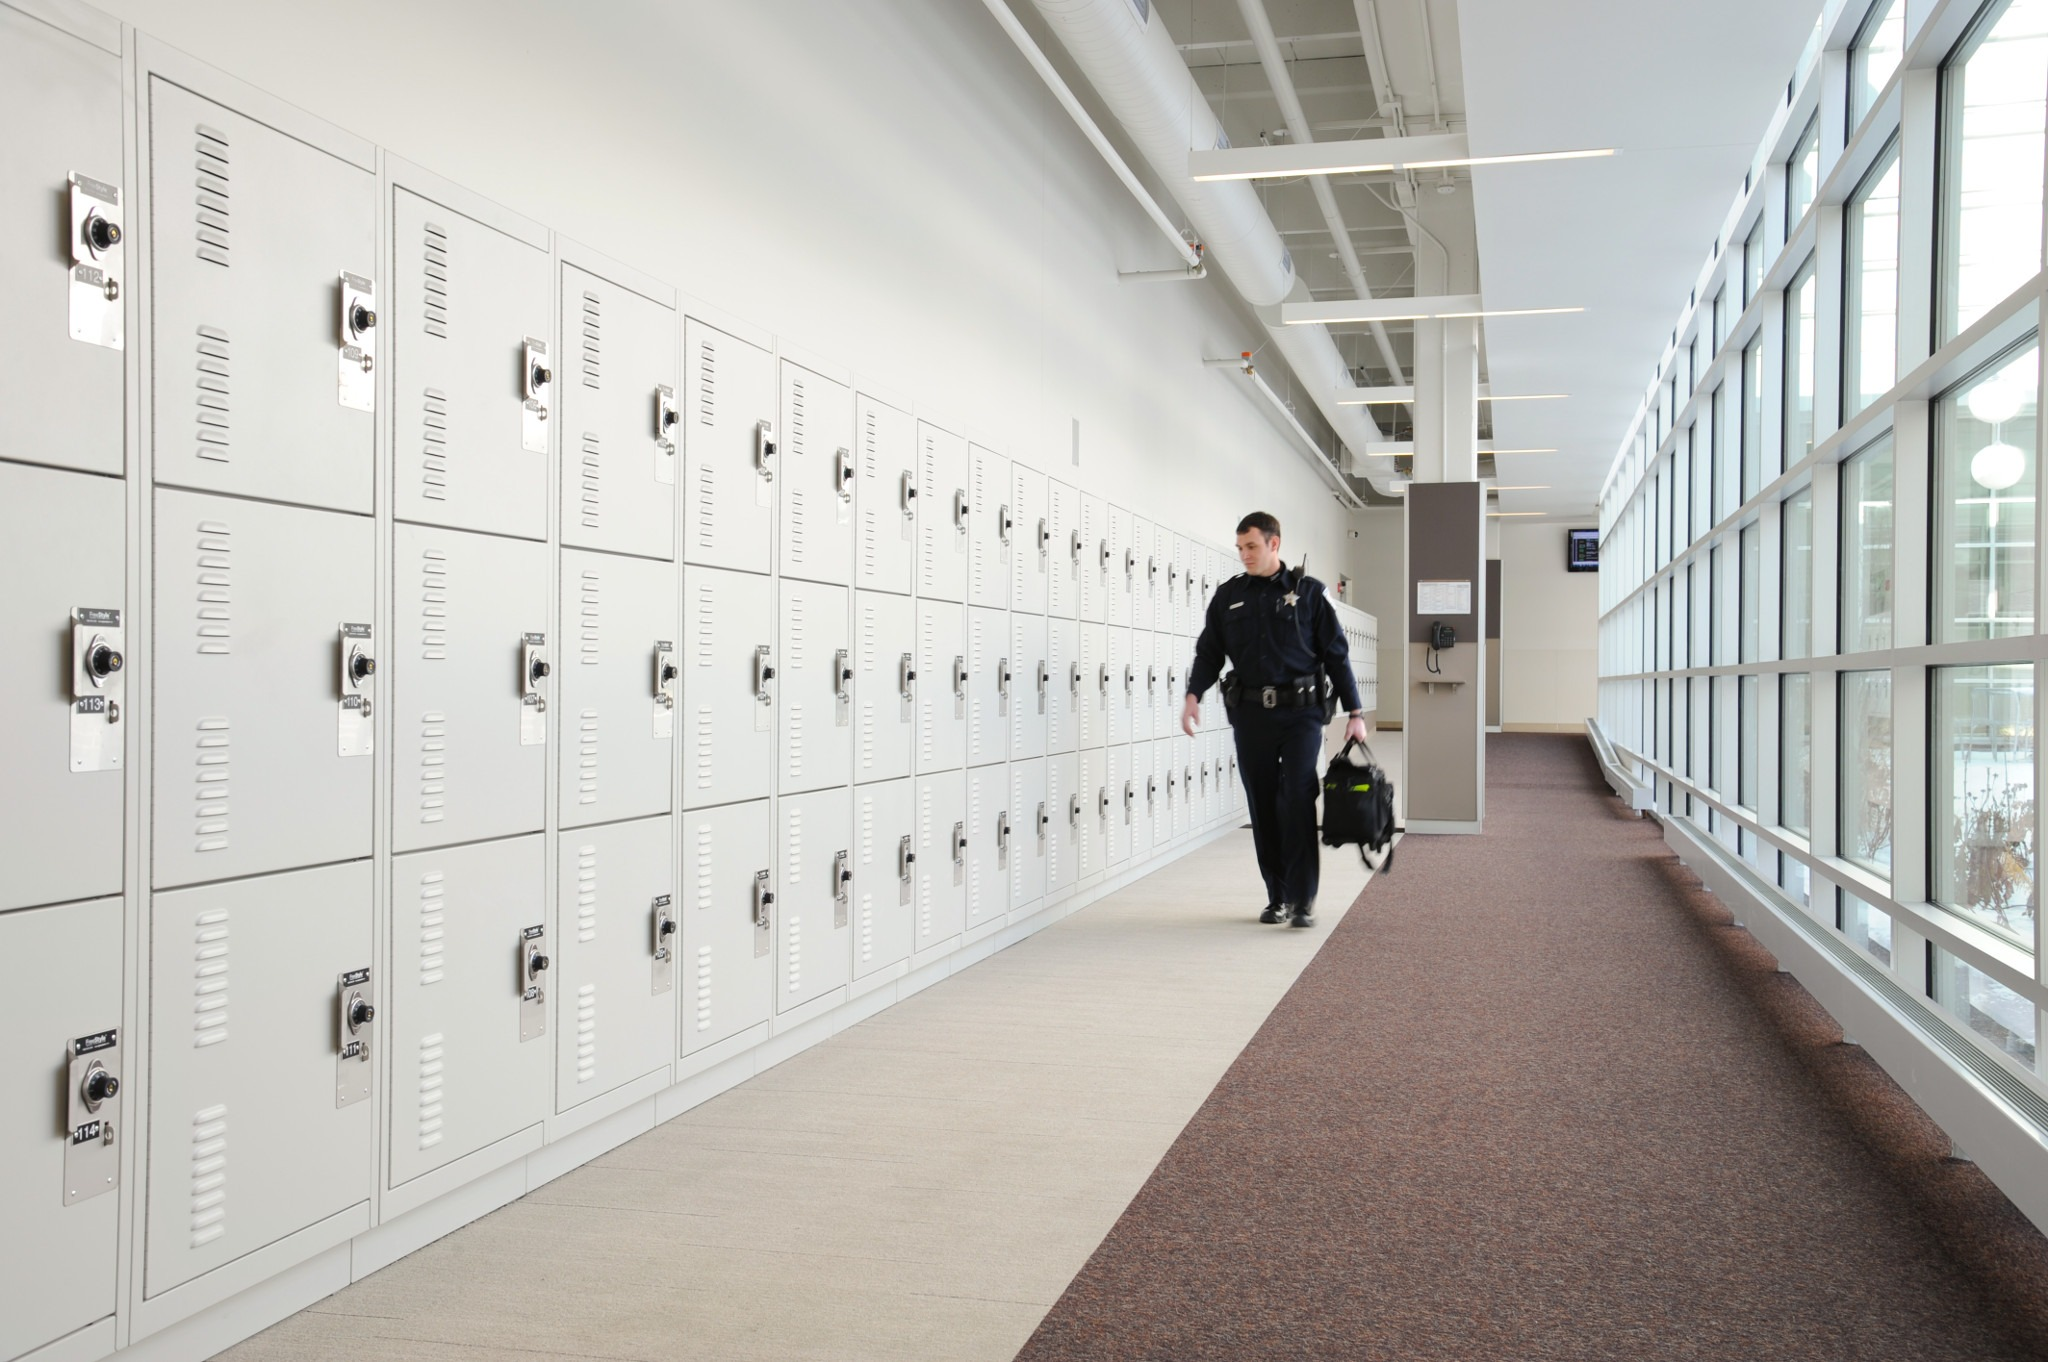 Public Safety Storage - Gear Lockers at Skokie Police Department